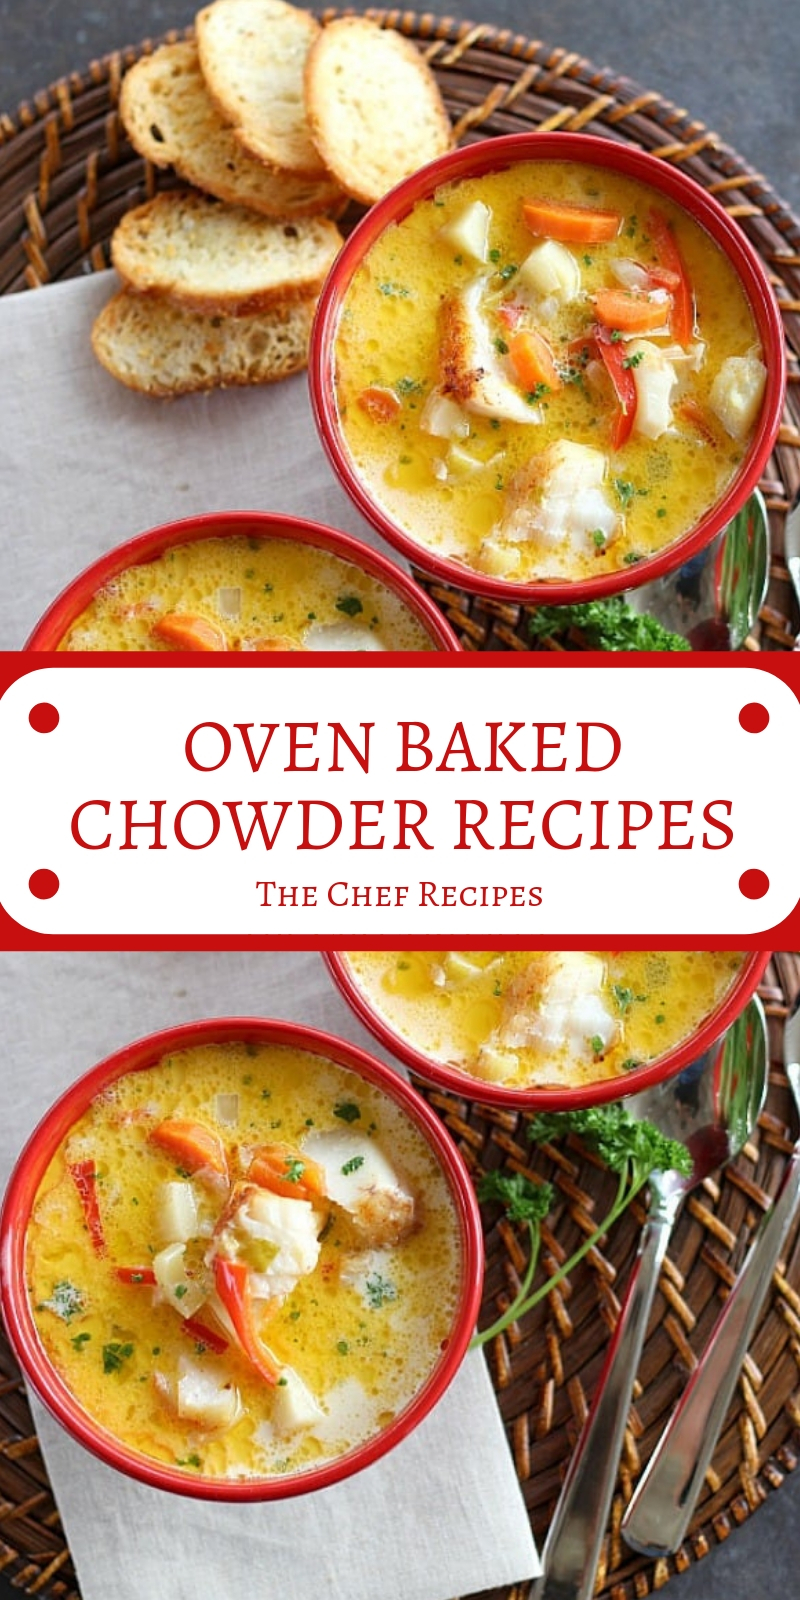 OVEN BAKED CHOWDER RECIPES